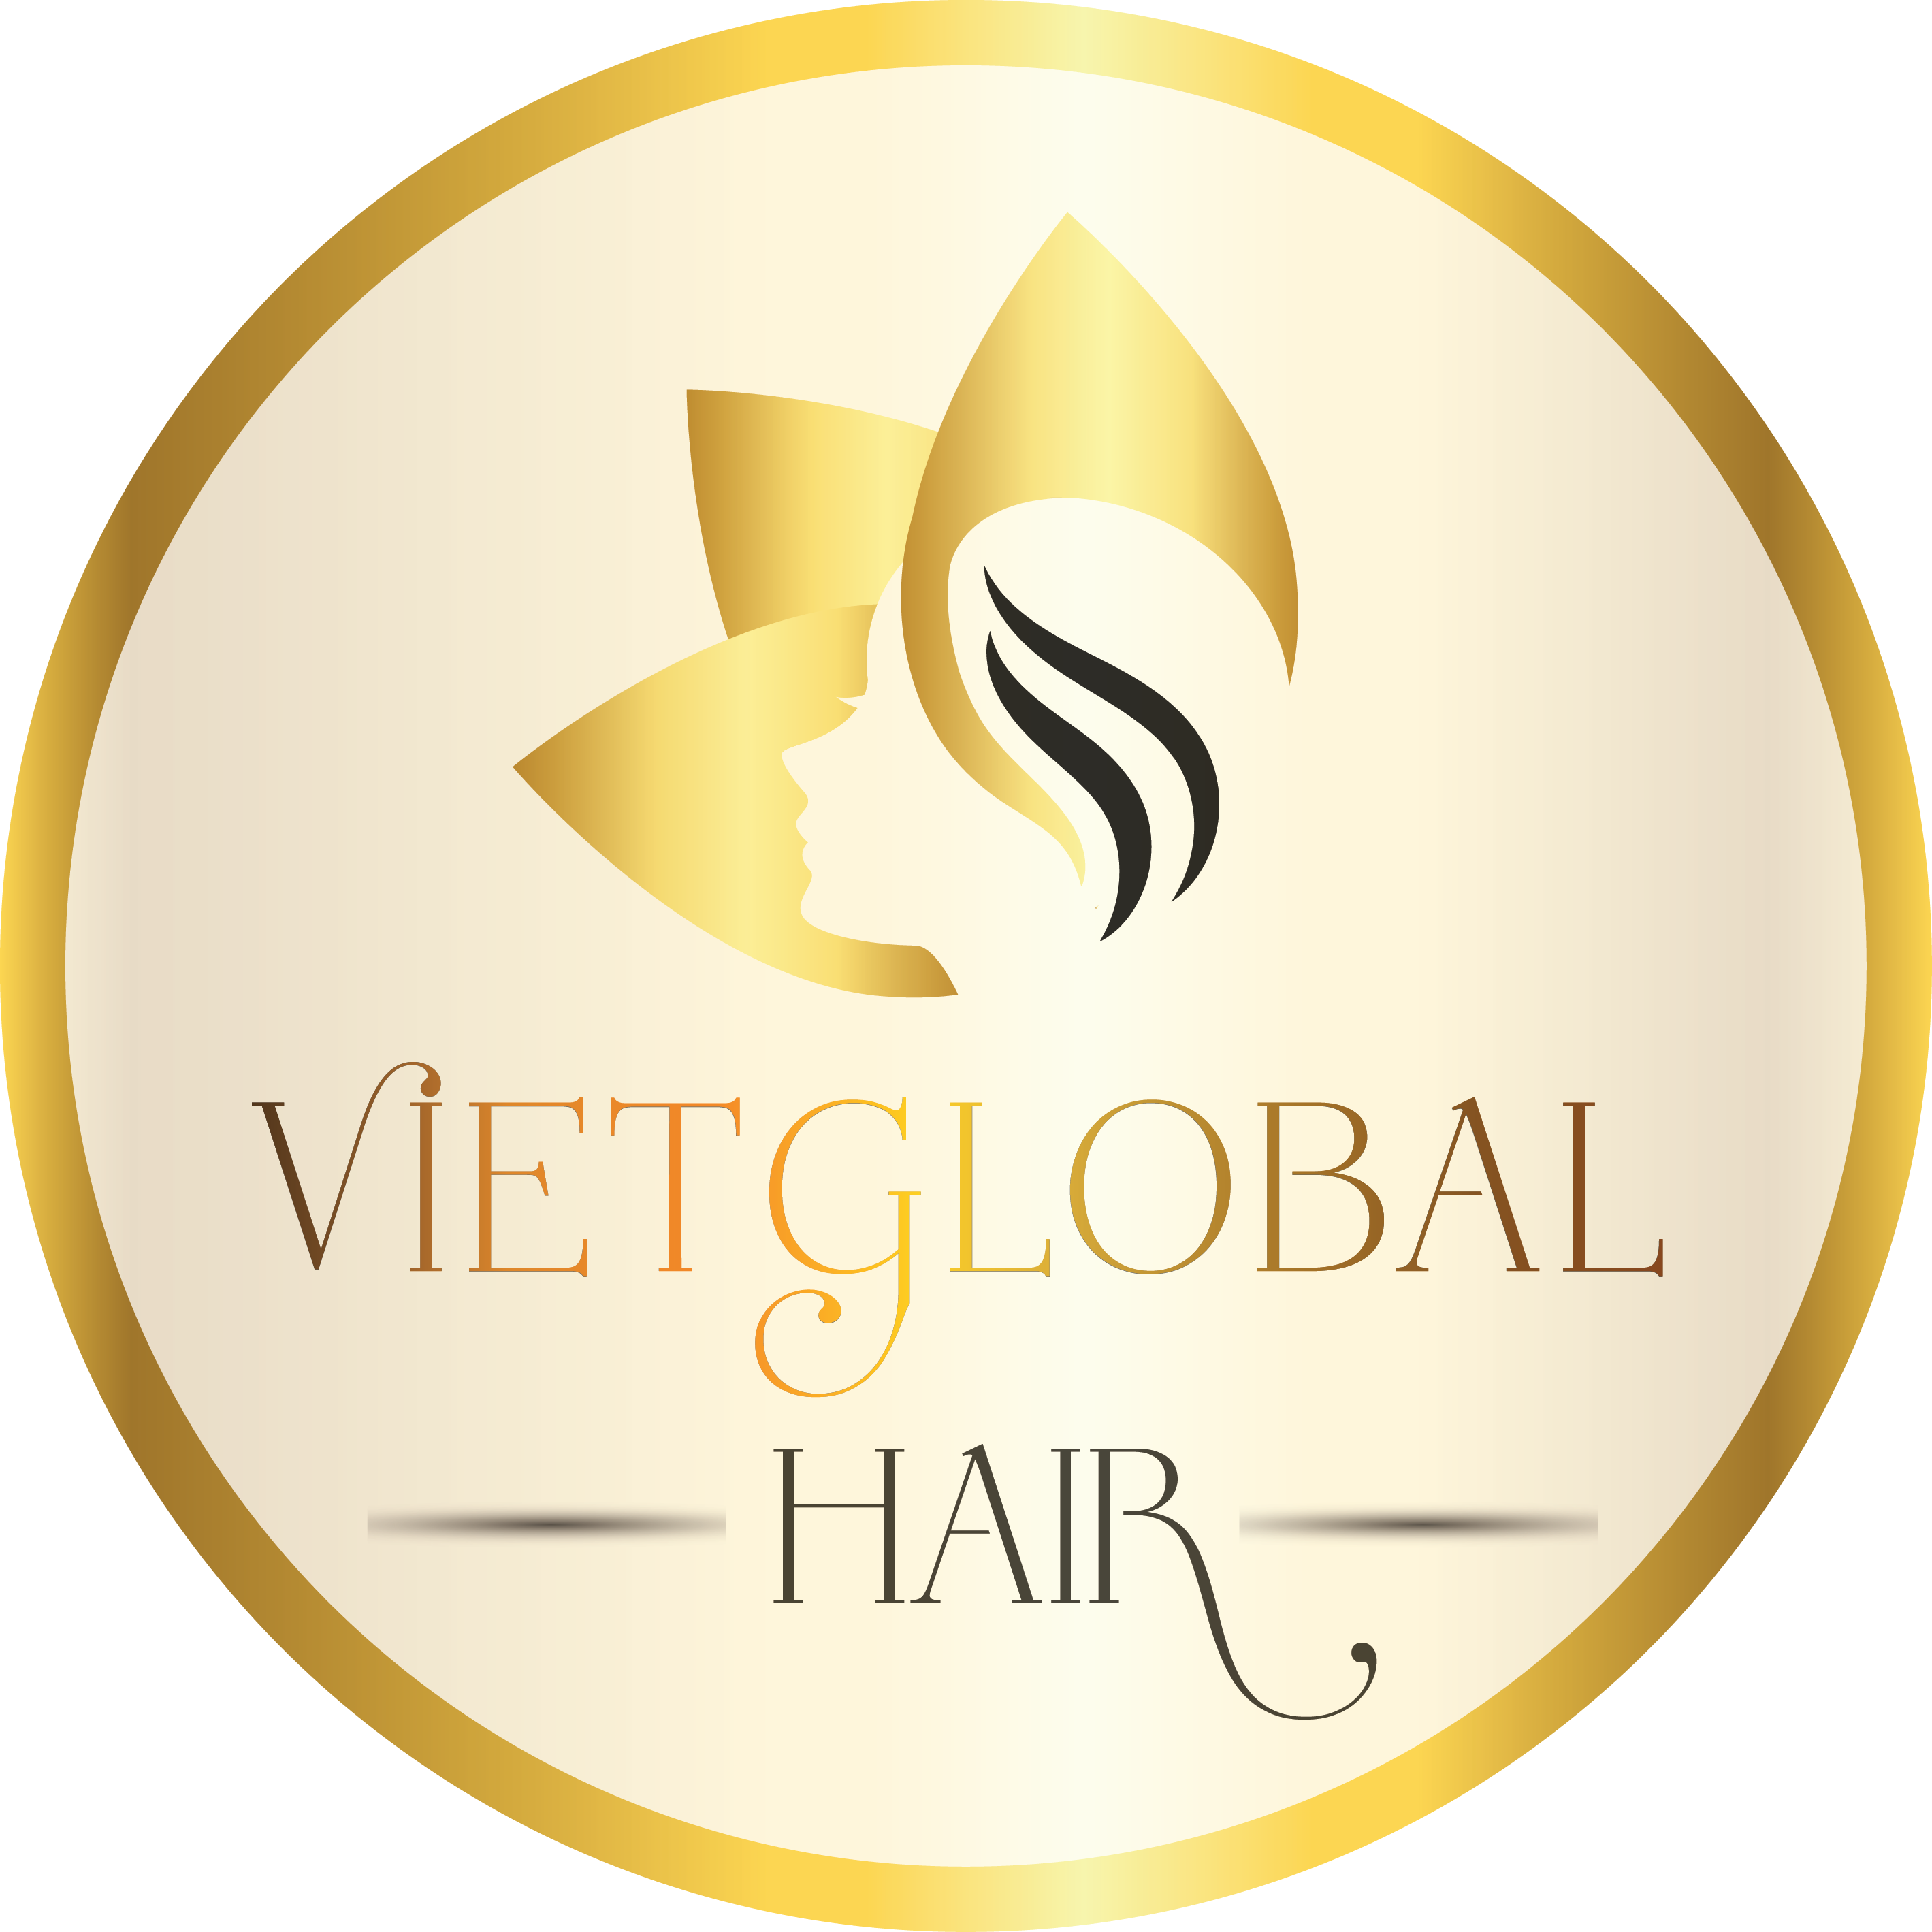 Vietglobal Hair